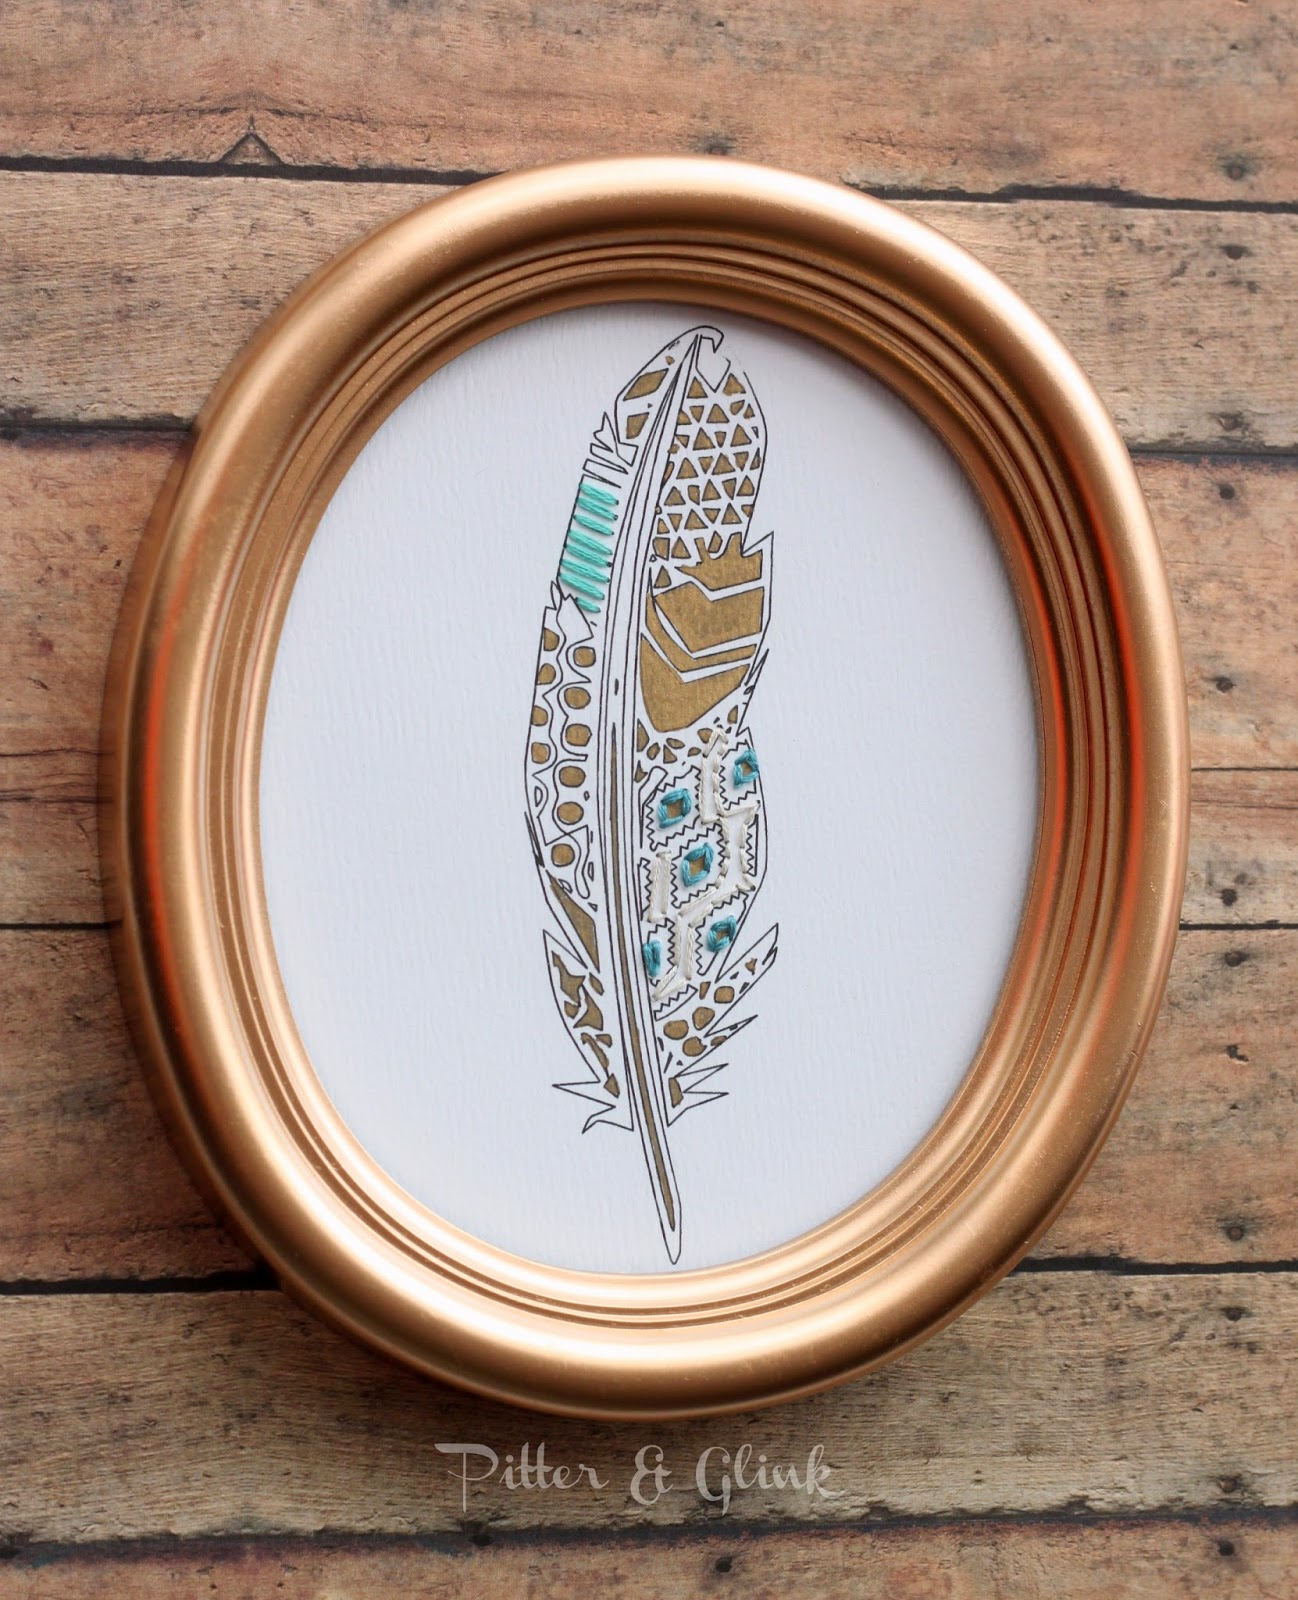 DIY Stitched Geometric Feather Art | Pitter and Glink